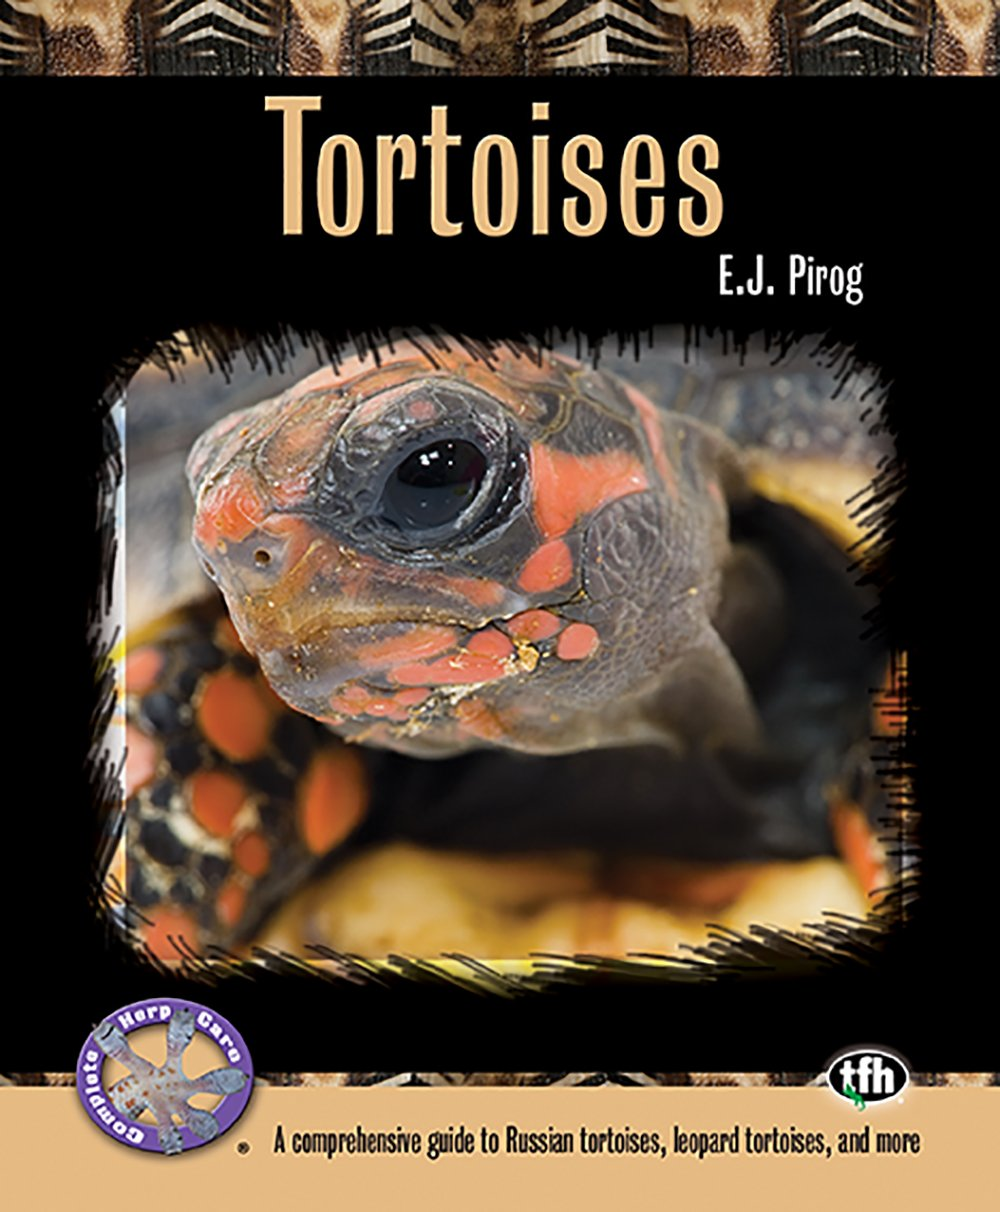 Tortoises: A Comprehensive Guide to Russian Tortoises, Leopard Tortoises, and more (Complete Herp Care) PDF